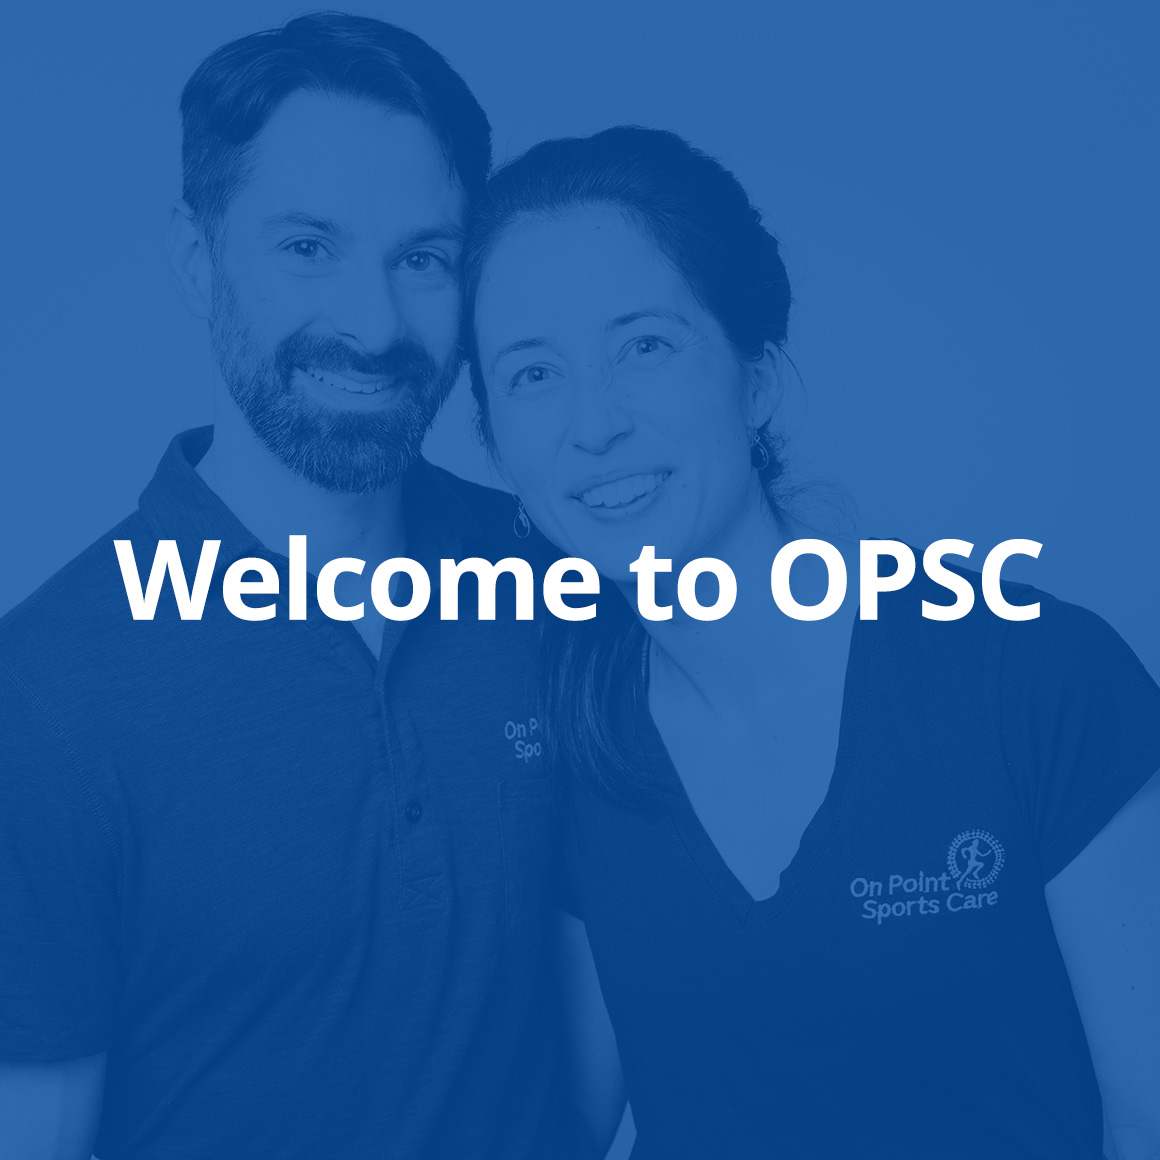 welcome-to-opsc-blog-post